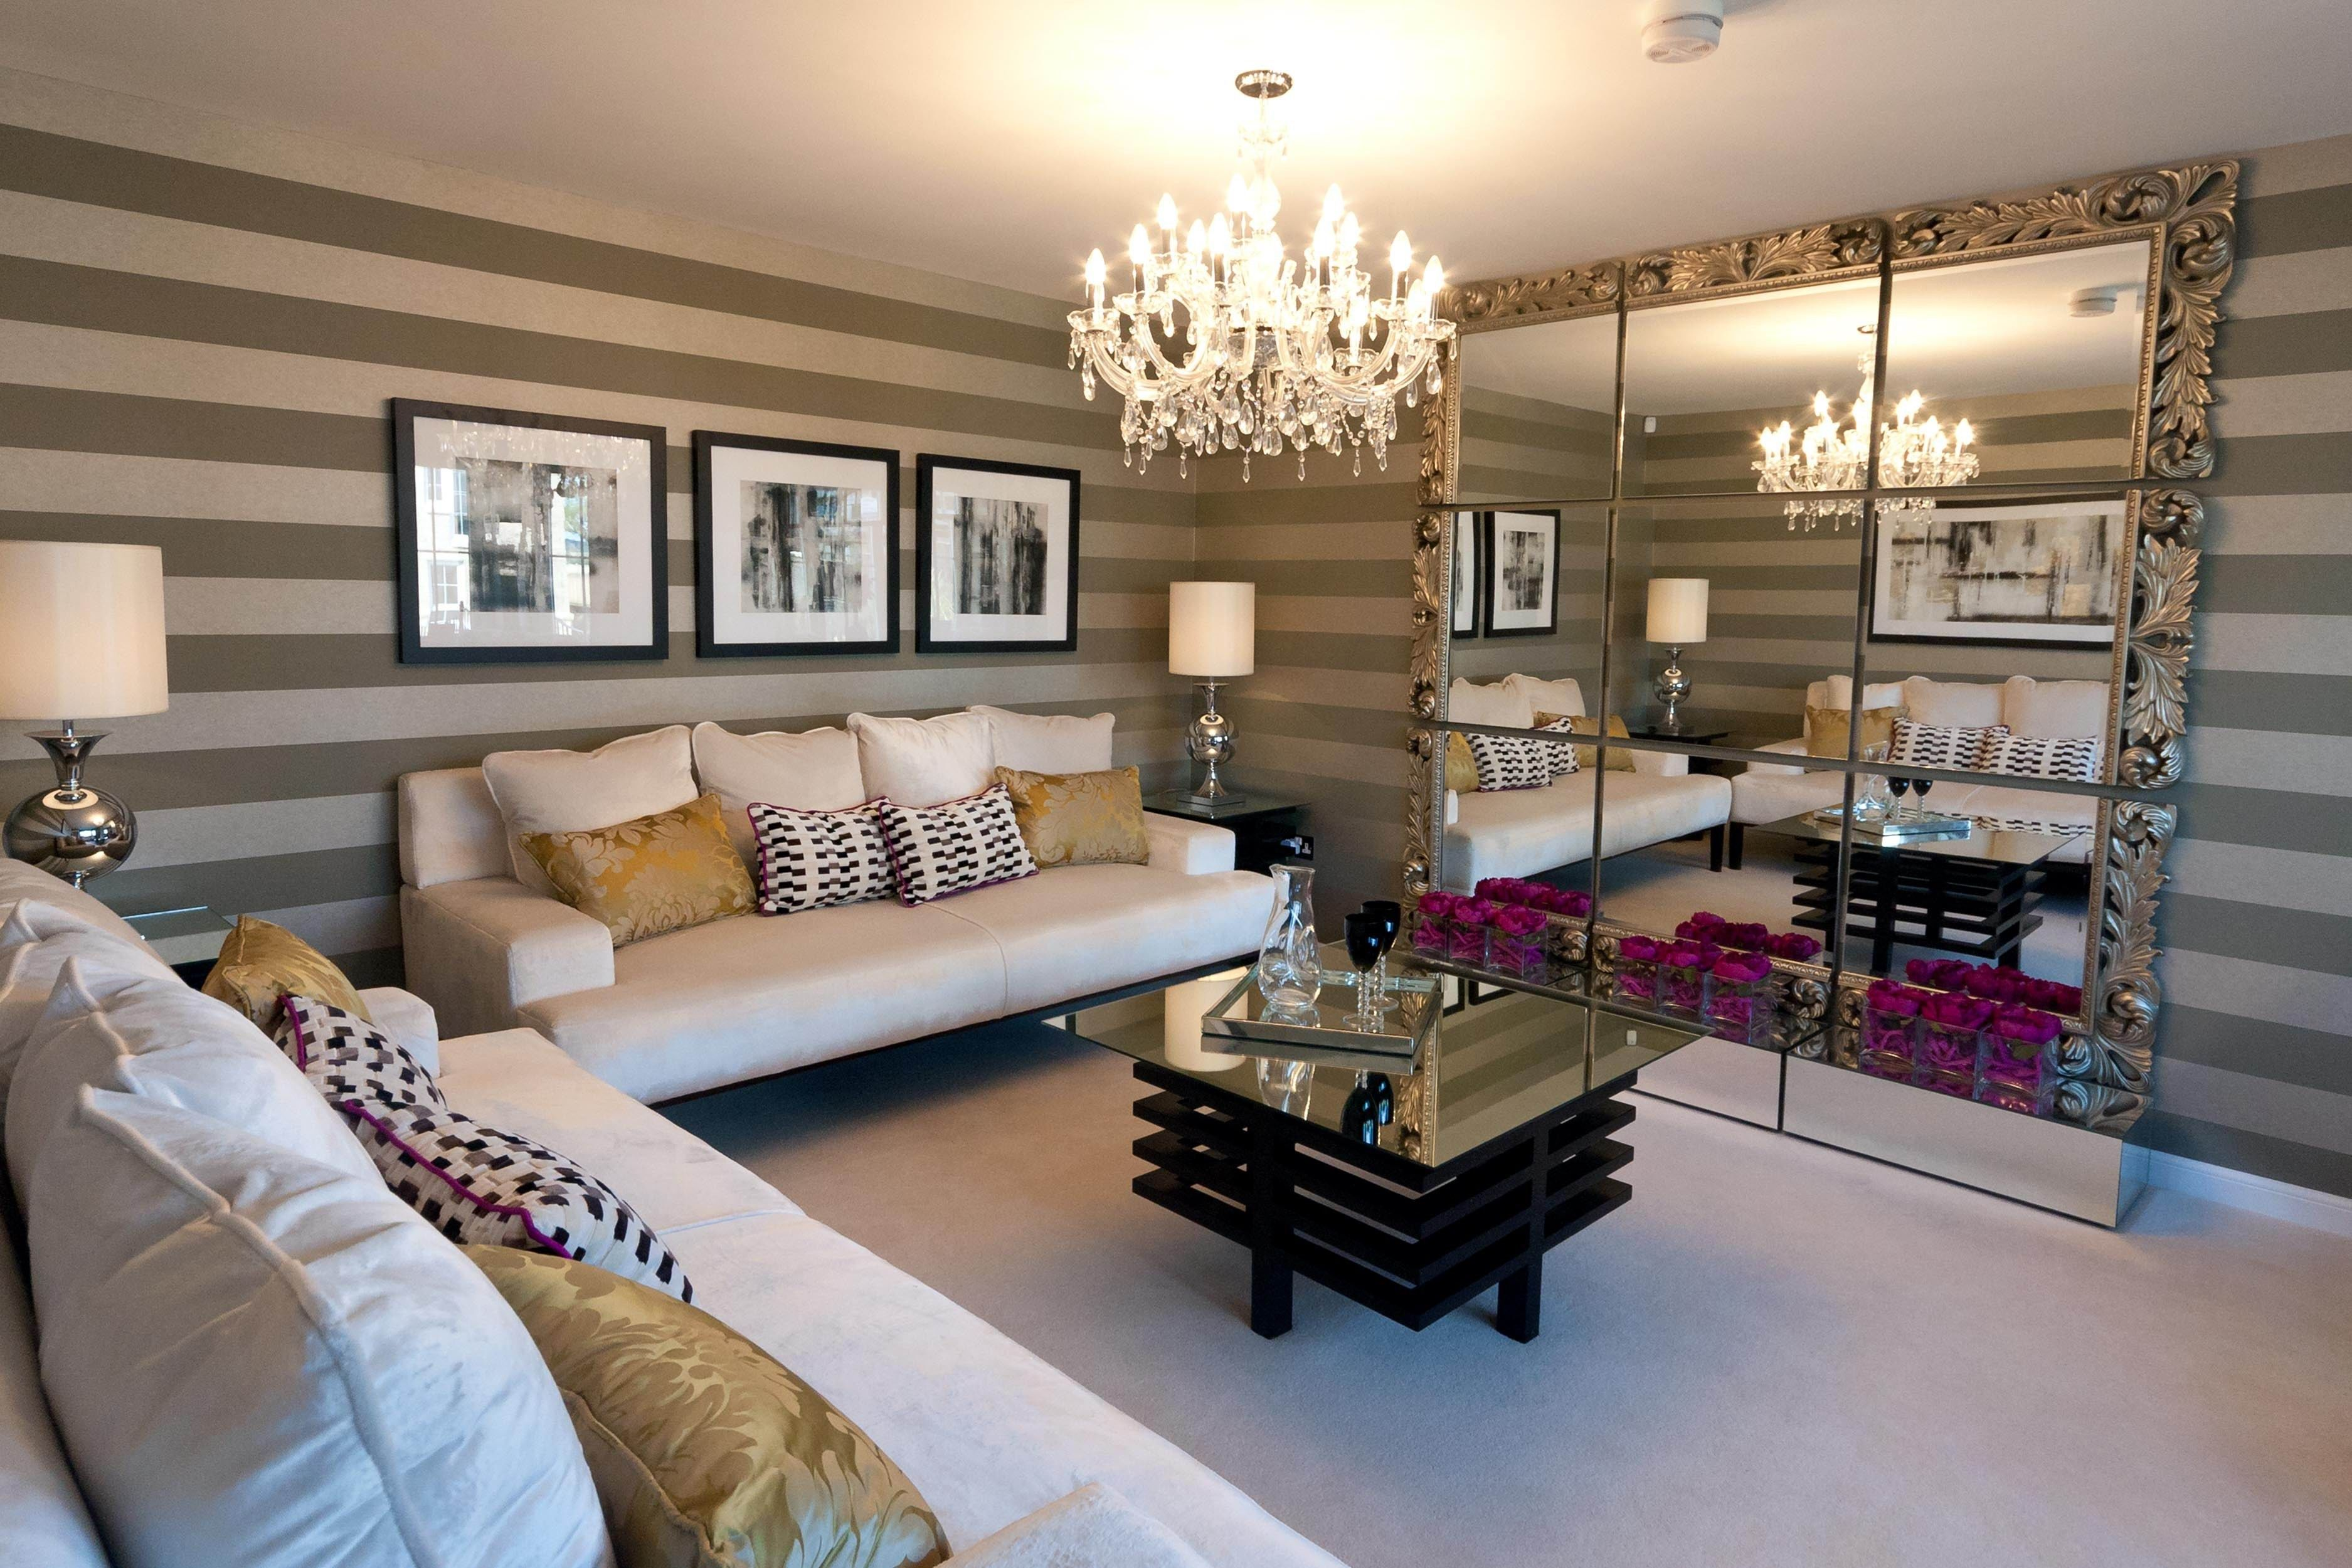 show homes - Google Search | jessies bridal room | Pinterest ...